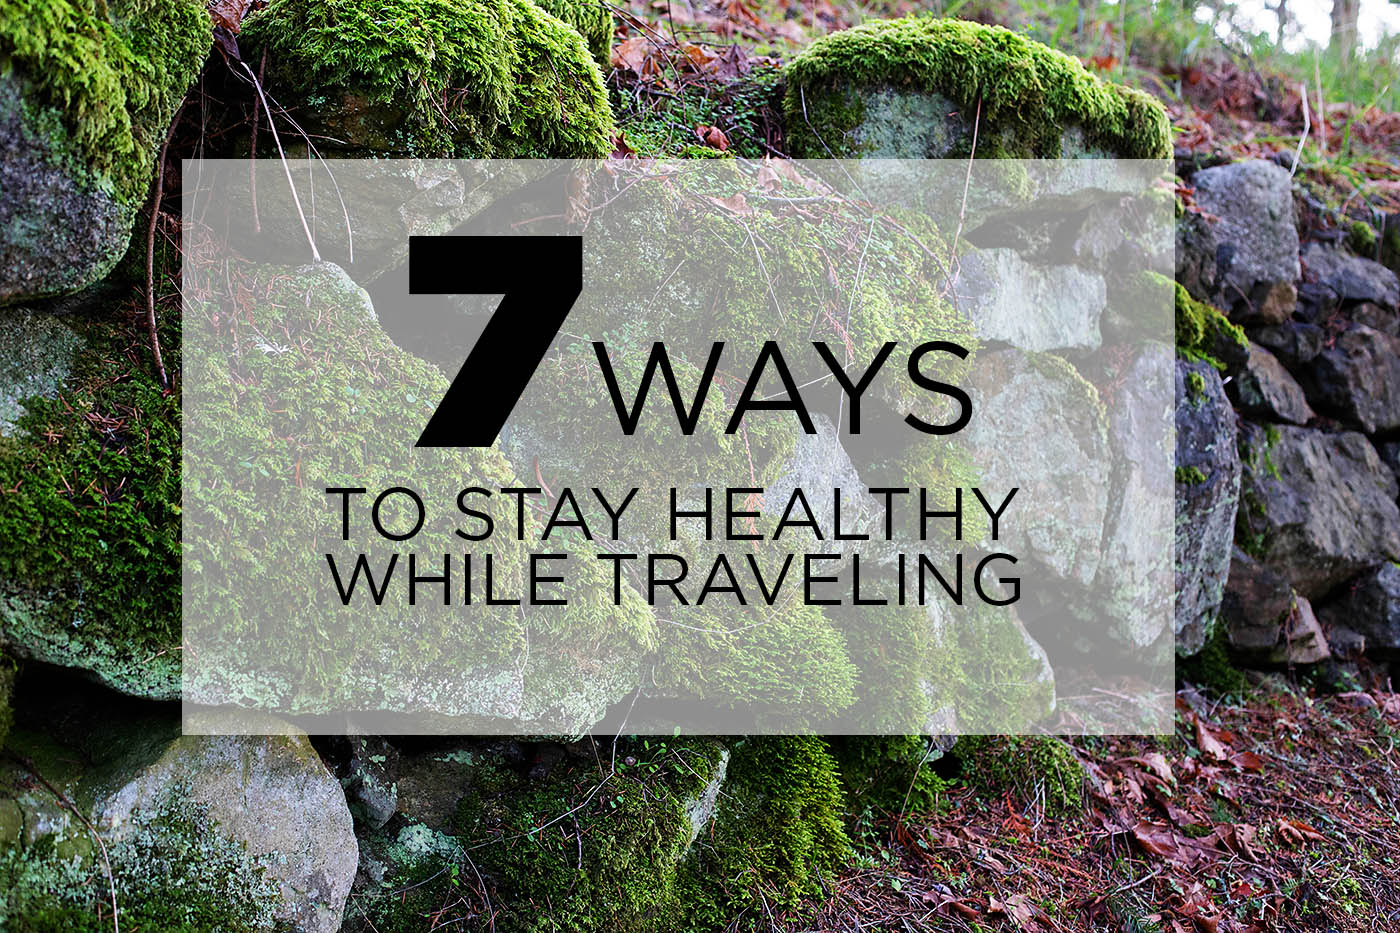 7 ways to stay healthy while traveling from a travel blogger with an autoimmune disease